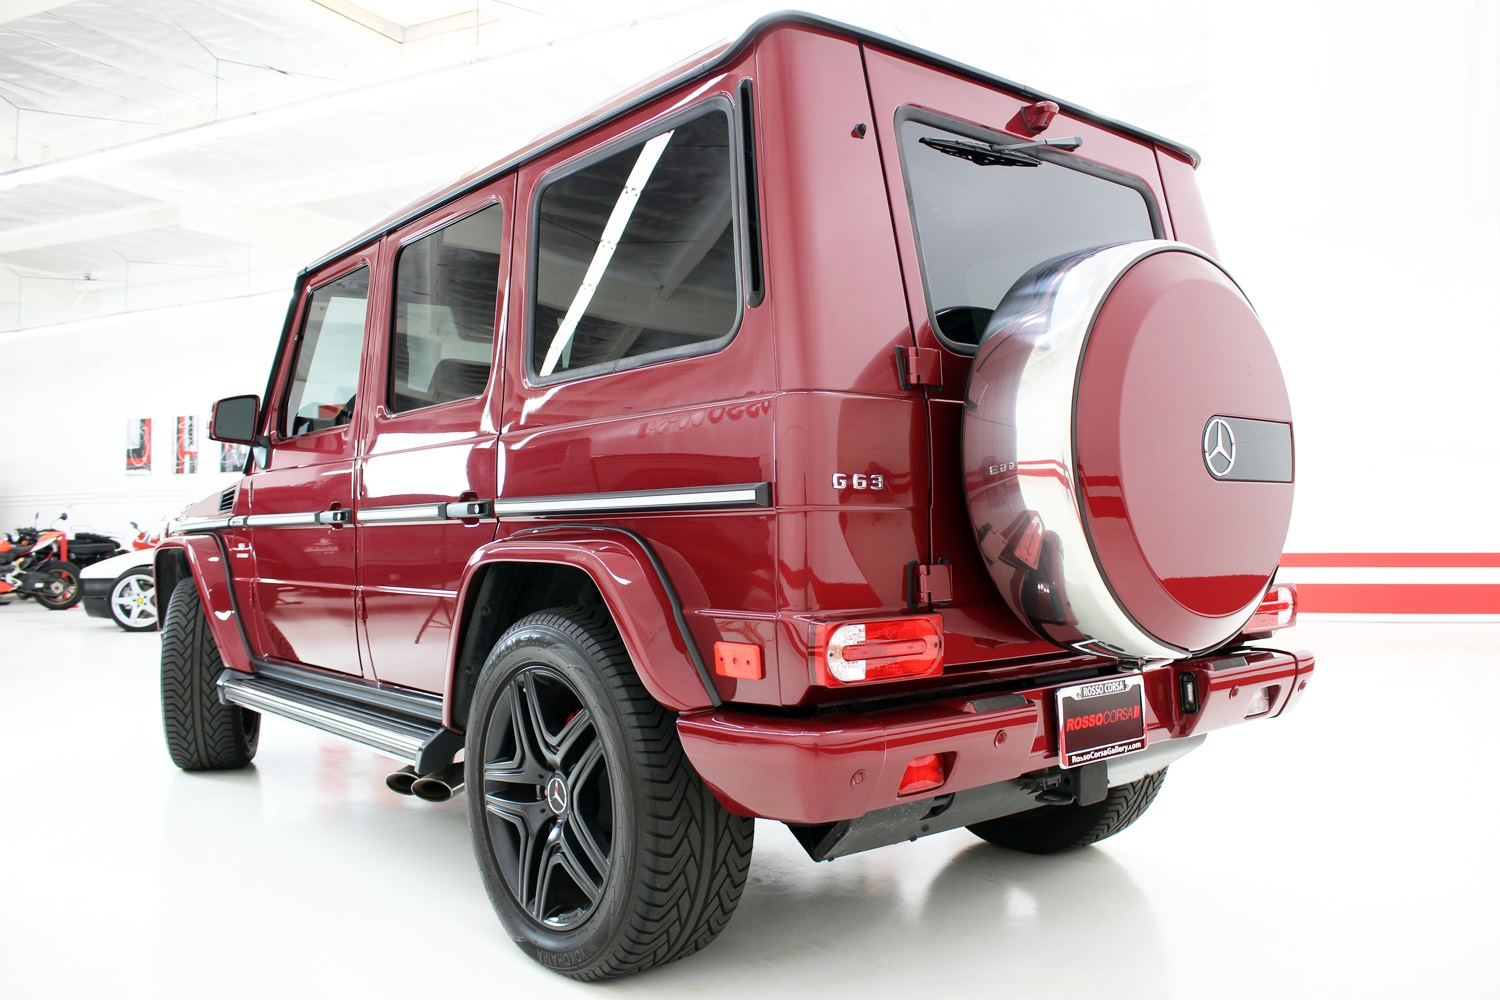 2014 Mercedes-Benz G63 AMG  ($175K MSRP)